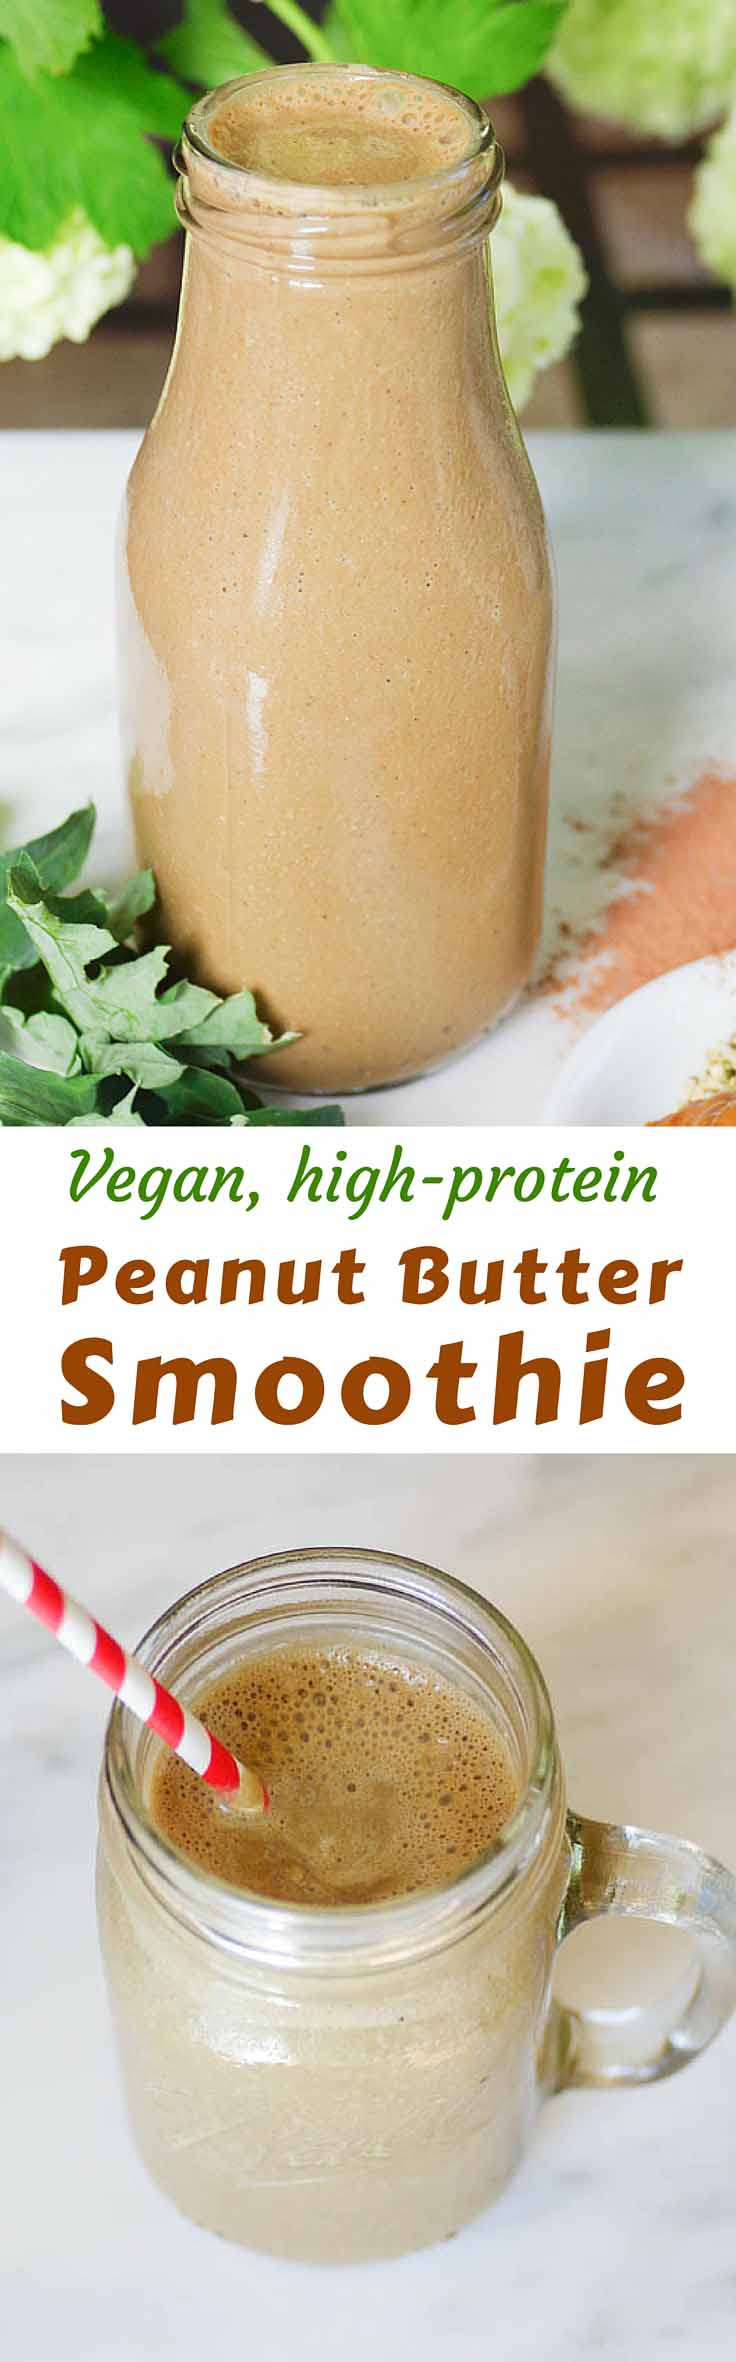 When I'm looking for a healthy cool-down after a good workout, this creamy, icy, flavorful Vegan Peanut Butter Protein Smoothie hits the spot. #healthyeating #healthyrecipes #diabetesdiet #diabetesrecipes #diabeticdiet #diabeticfood #diabeticrecipe #diabeticfriendly #vegan #vegetarian #proteinshake